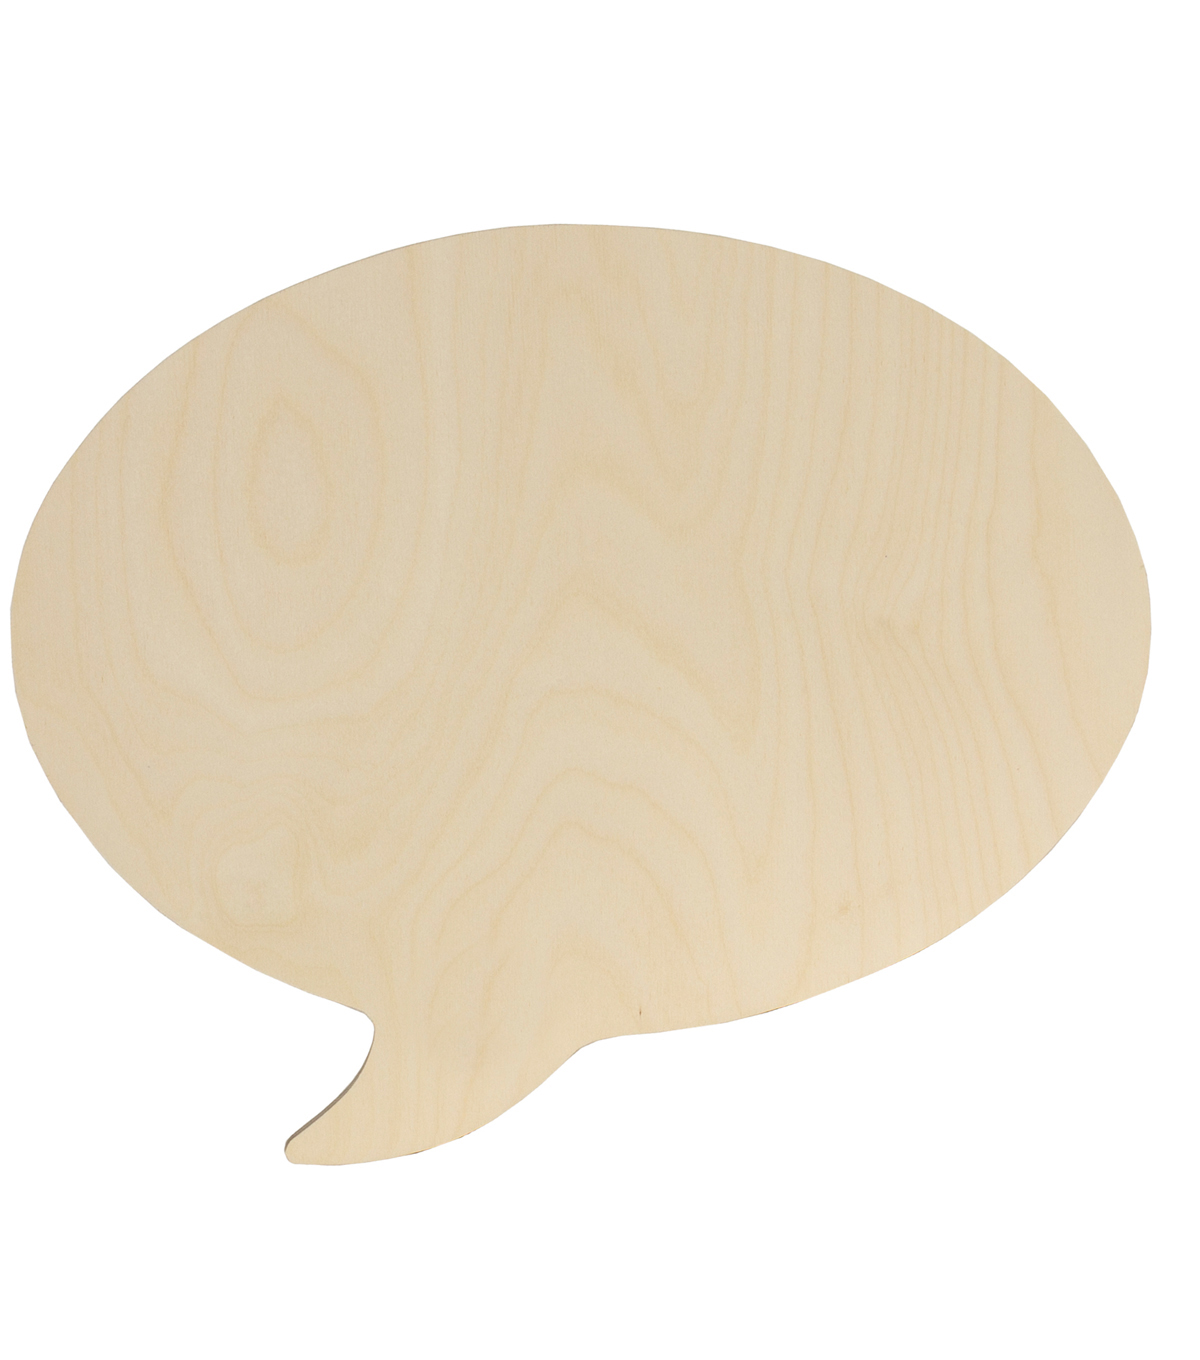 Walnut Hollow Unfinished Wood Surface Oval Speech Bubble